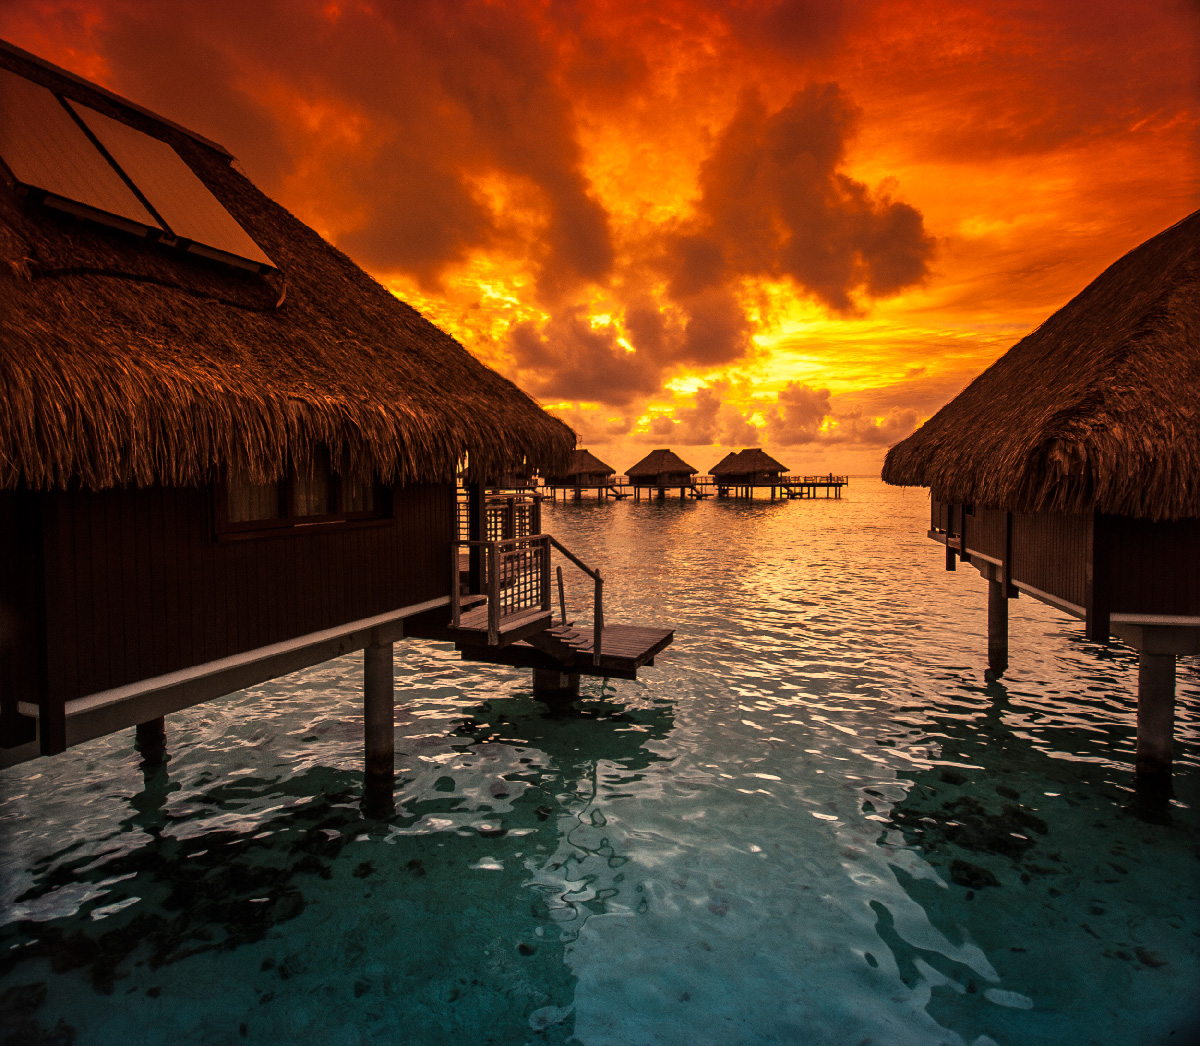 Brilliant sun display from Hilton Moorea, Tahiti